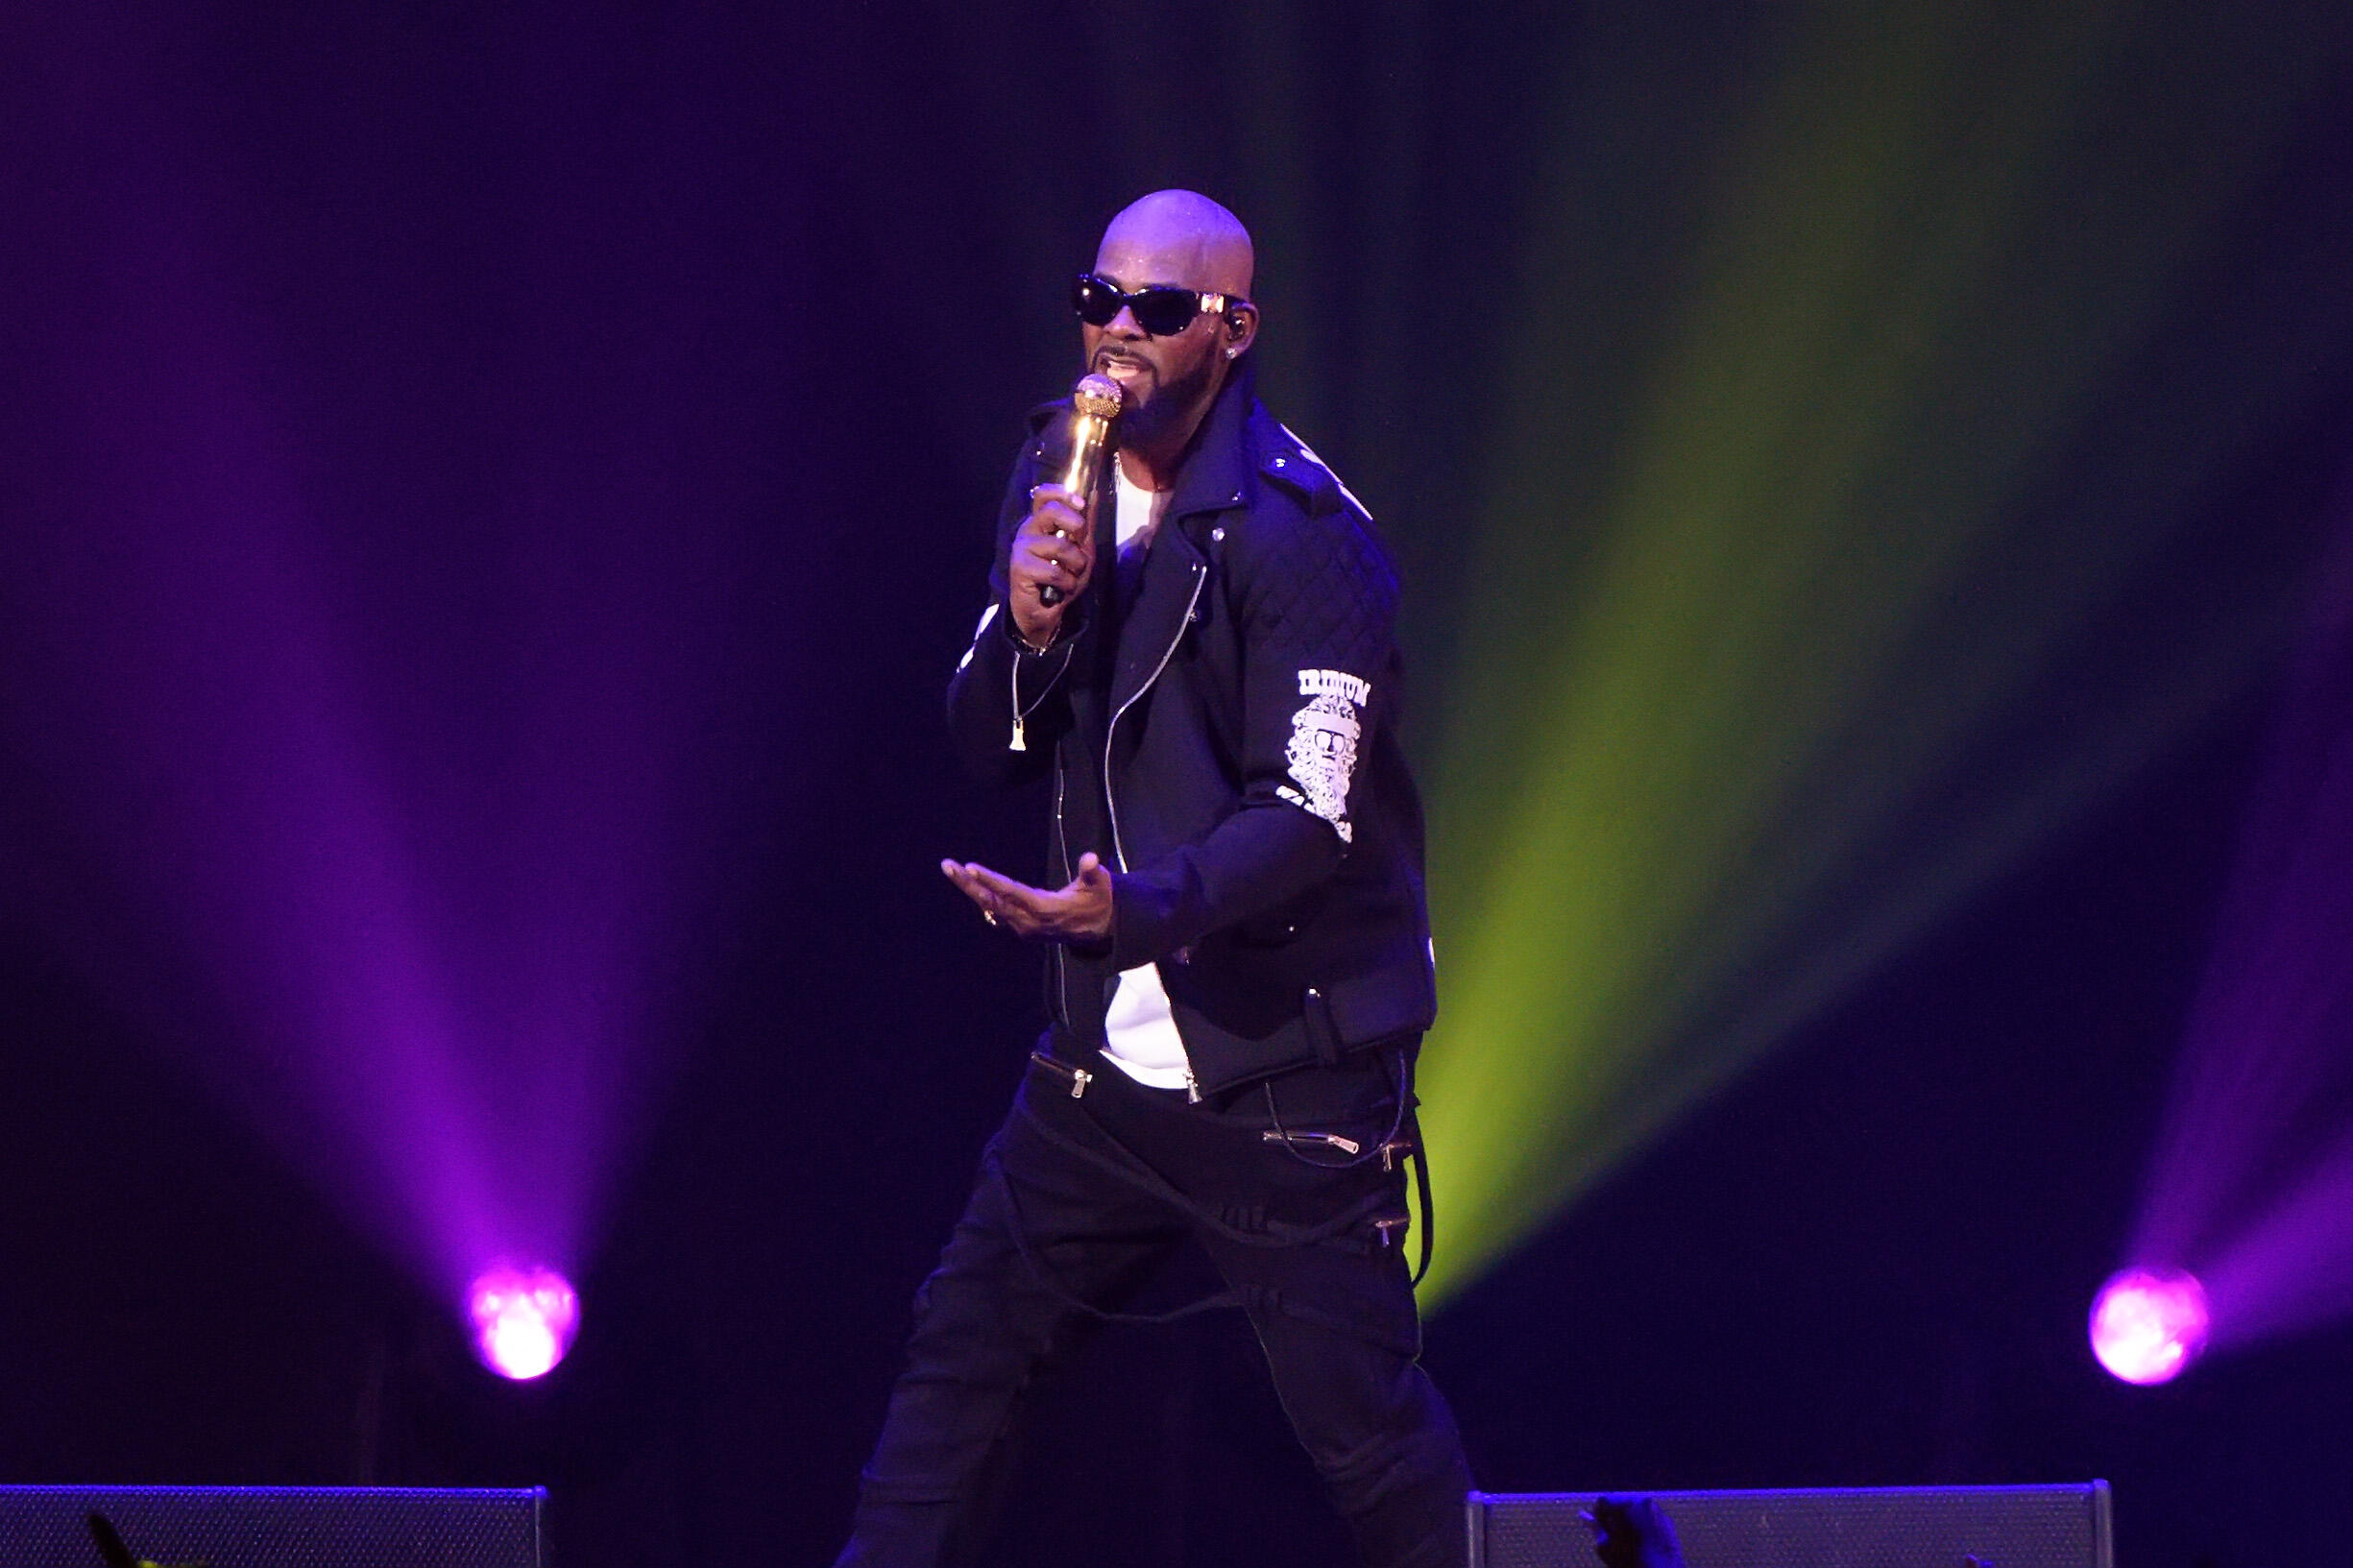 Ouch! R. Kelly's Bank Account is Depleting, Has Less than $13 to His Name